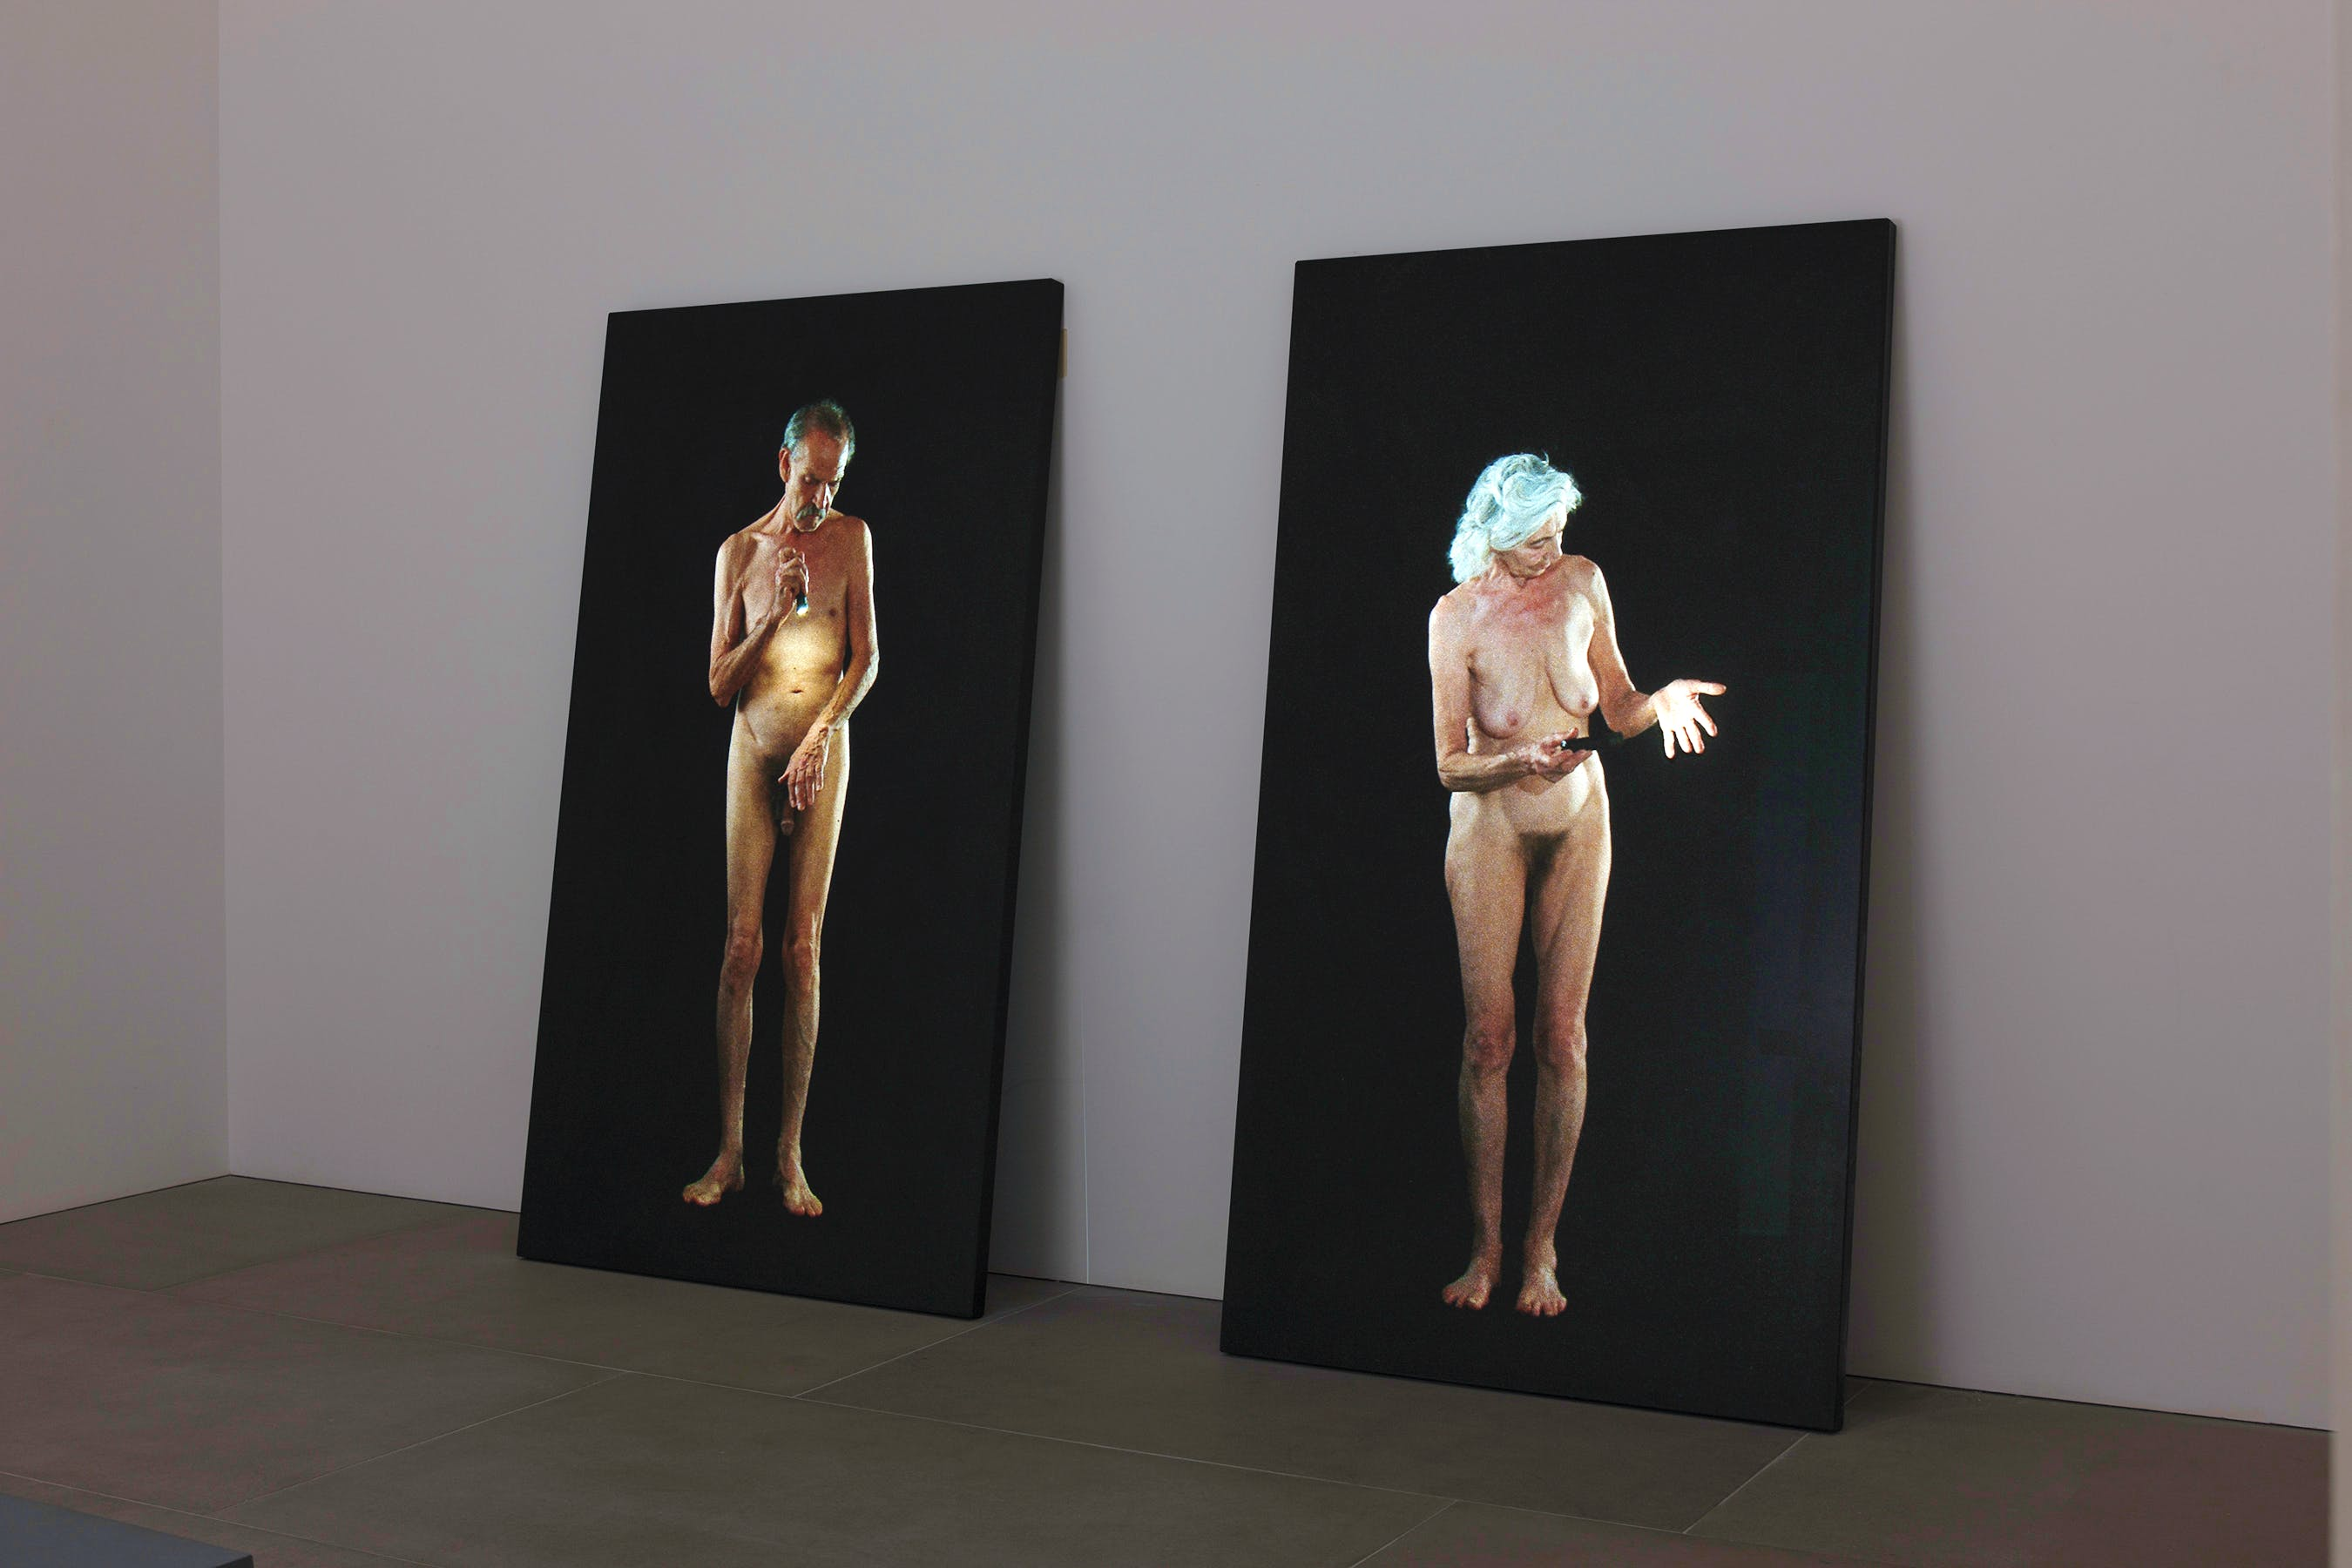 Man Searching for Immortality/Woman Searching for Eternity (installation view; 2013), Bill Viola. Courtesy Bill Viola Studio and Blain|Southern, London